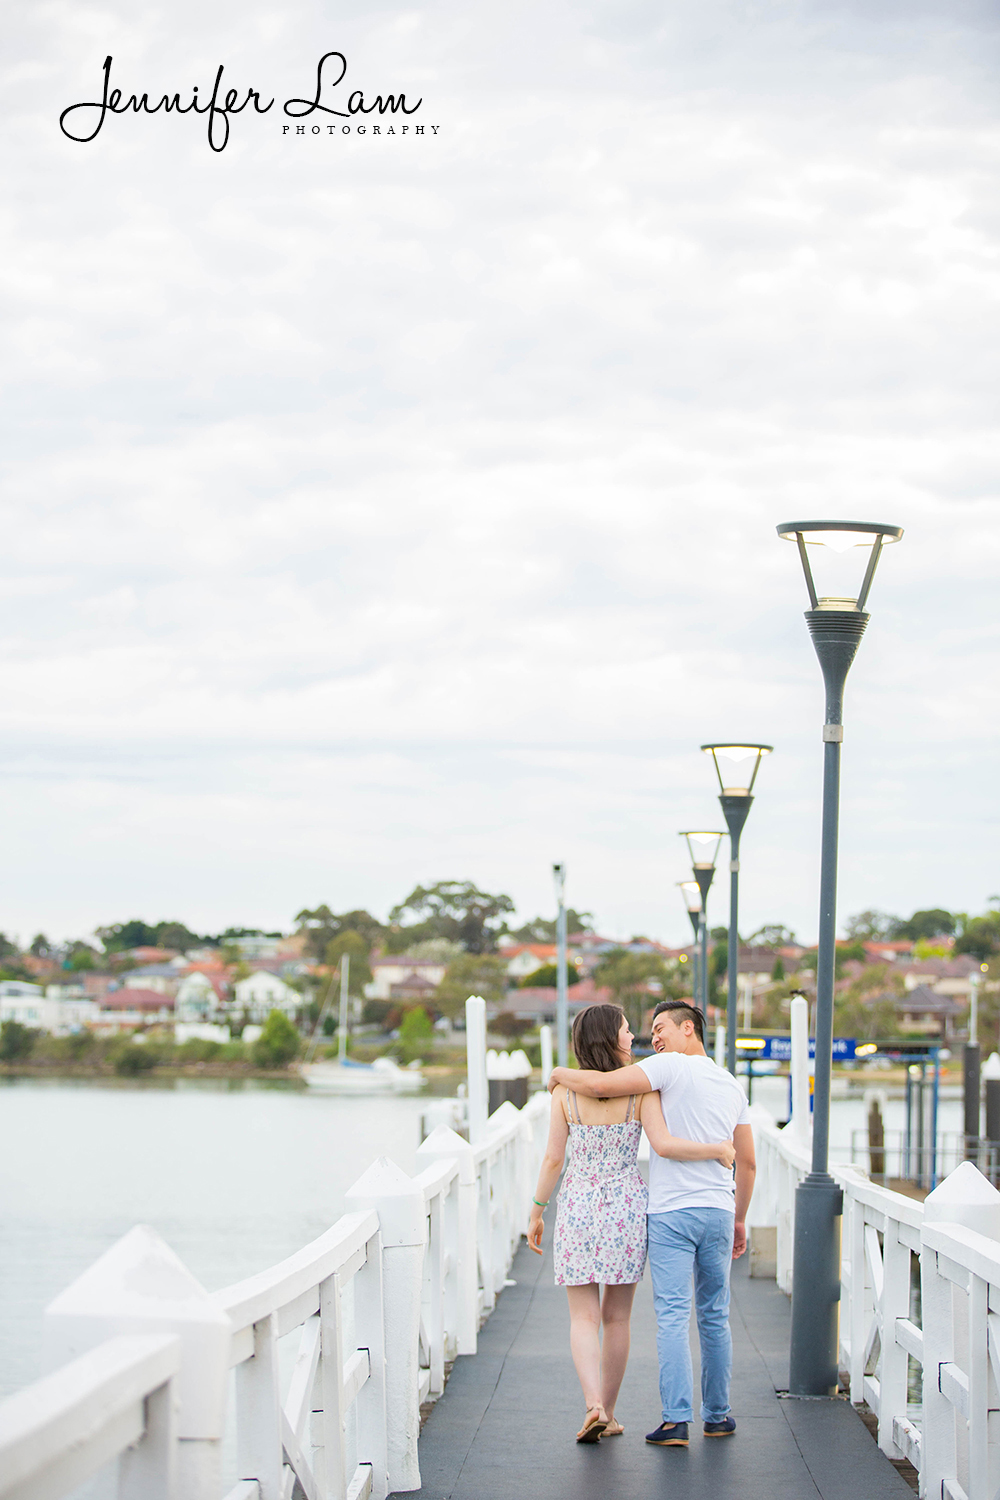 Sydney Pre-Wedding Photography - Jennifer Lam Photography (9).jpg